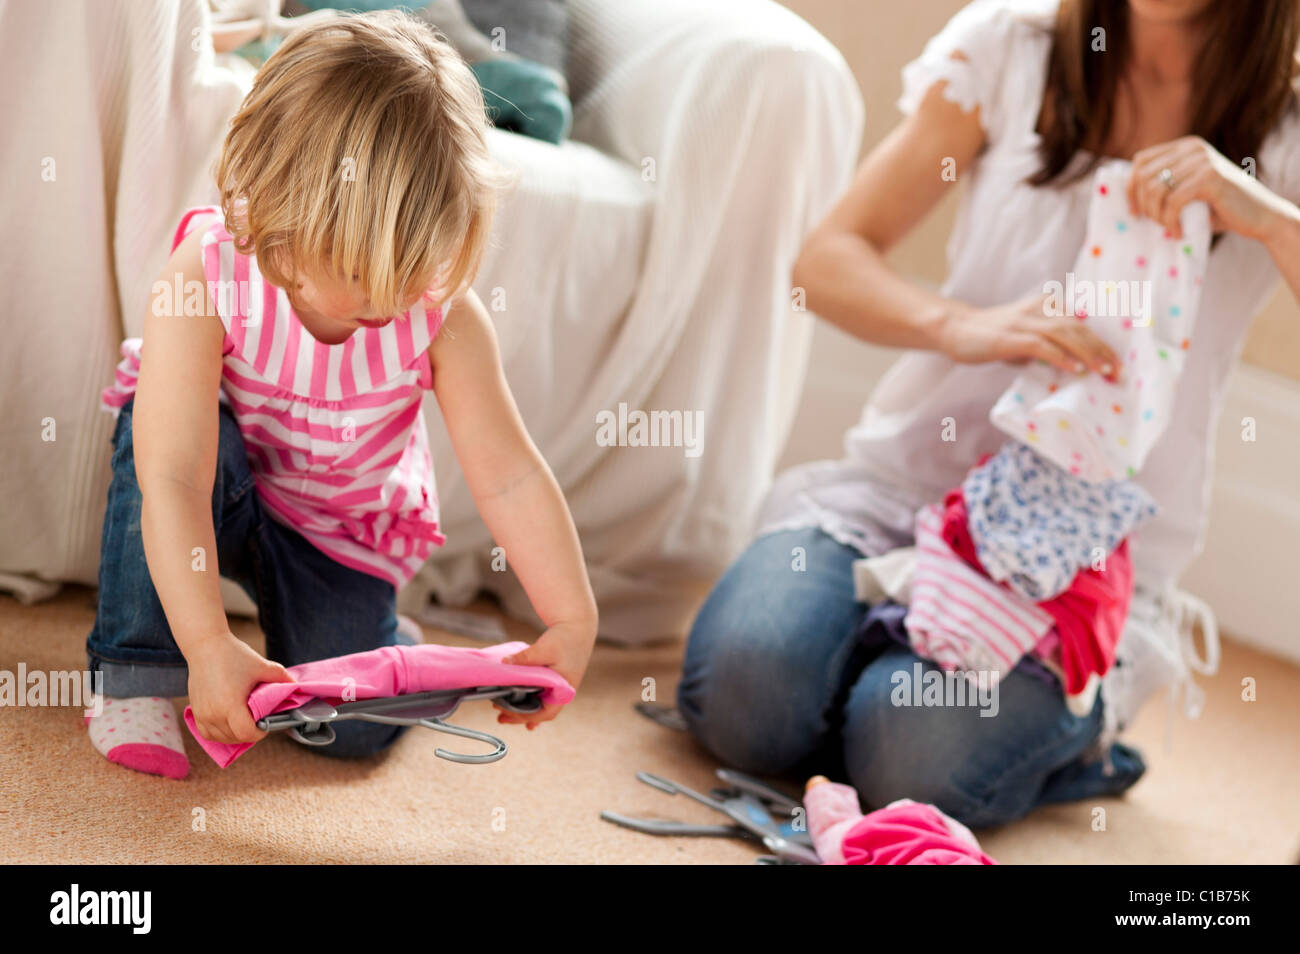 mother-and-child-choosing-clothes-to-wea